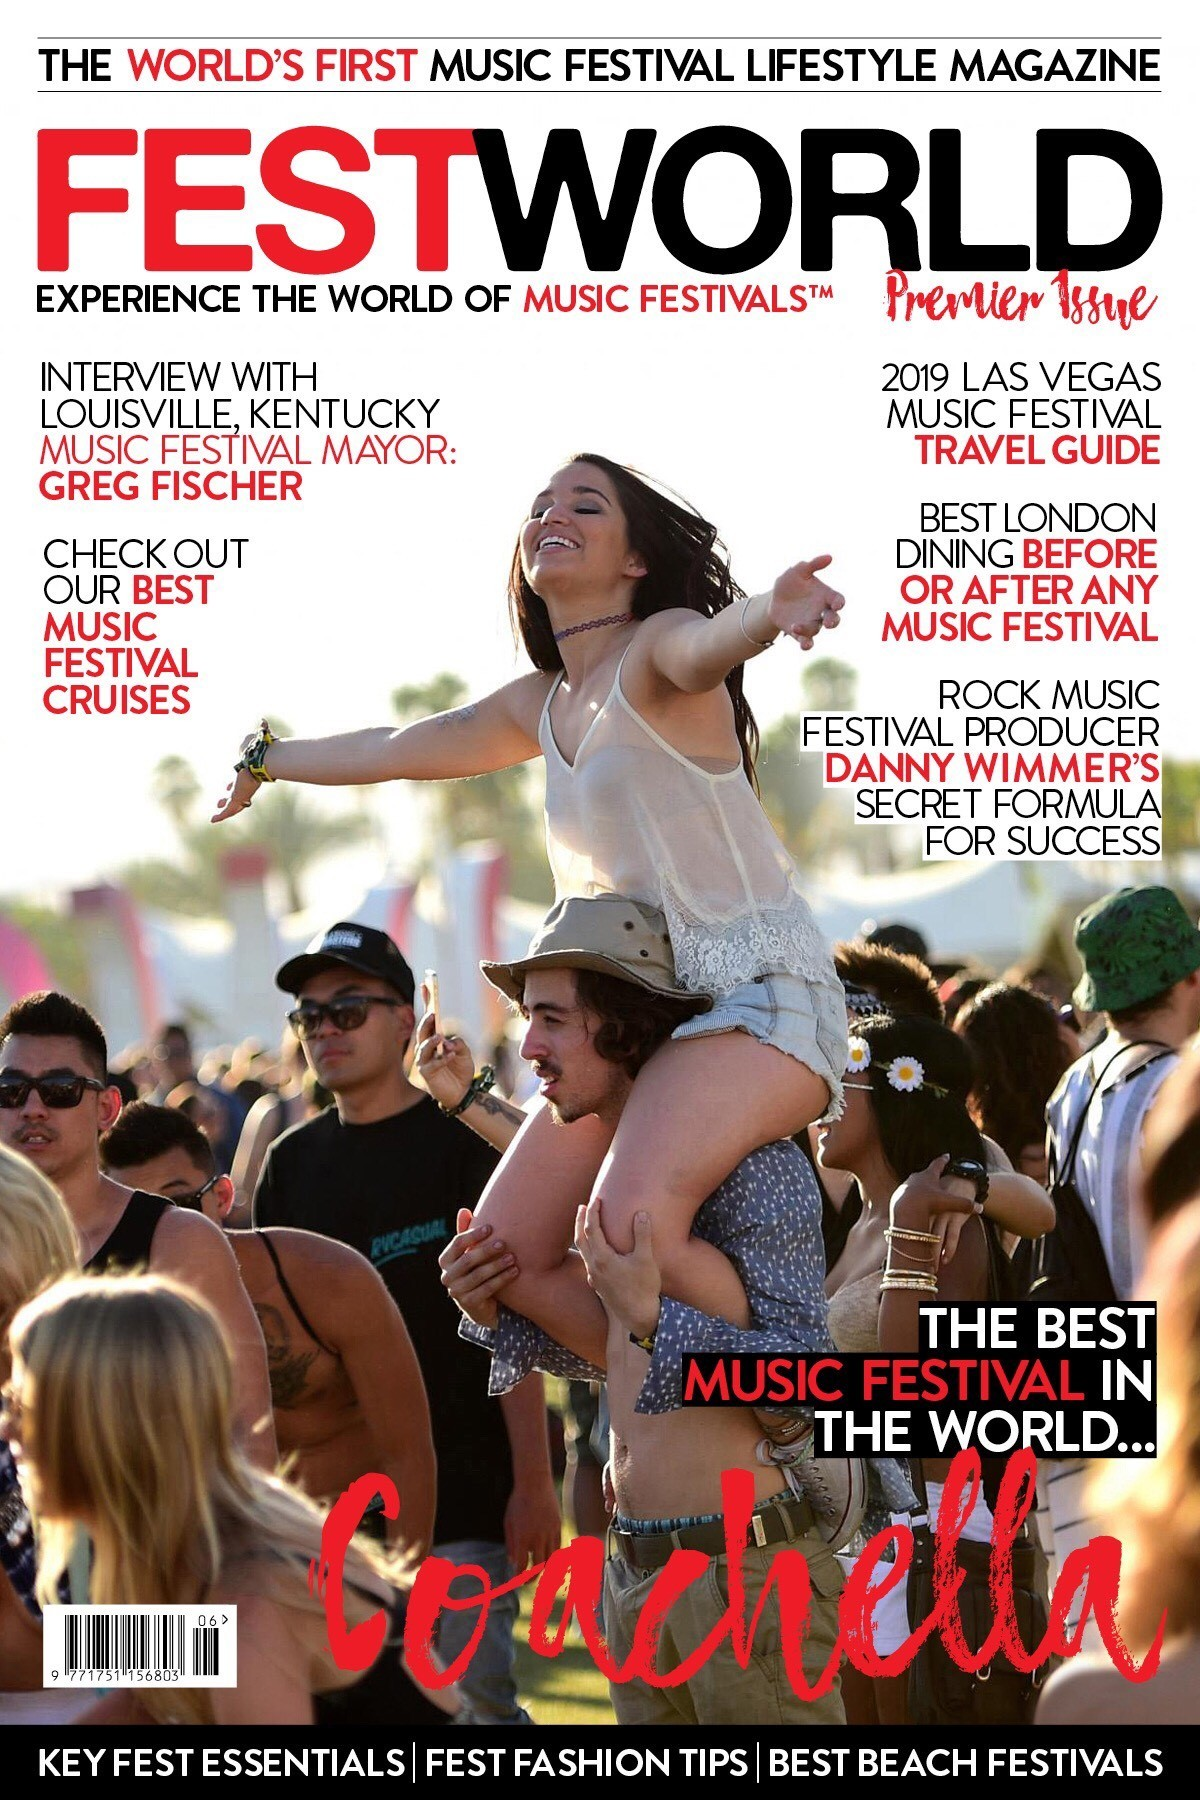 The World's First Music Festival Lifestyle Magazine Launches